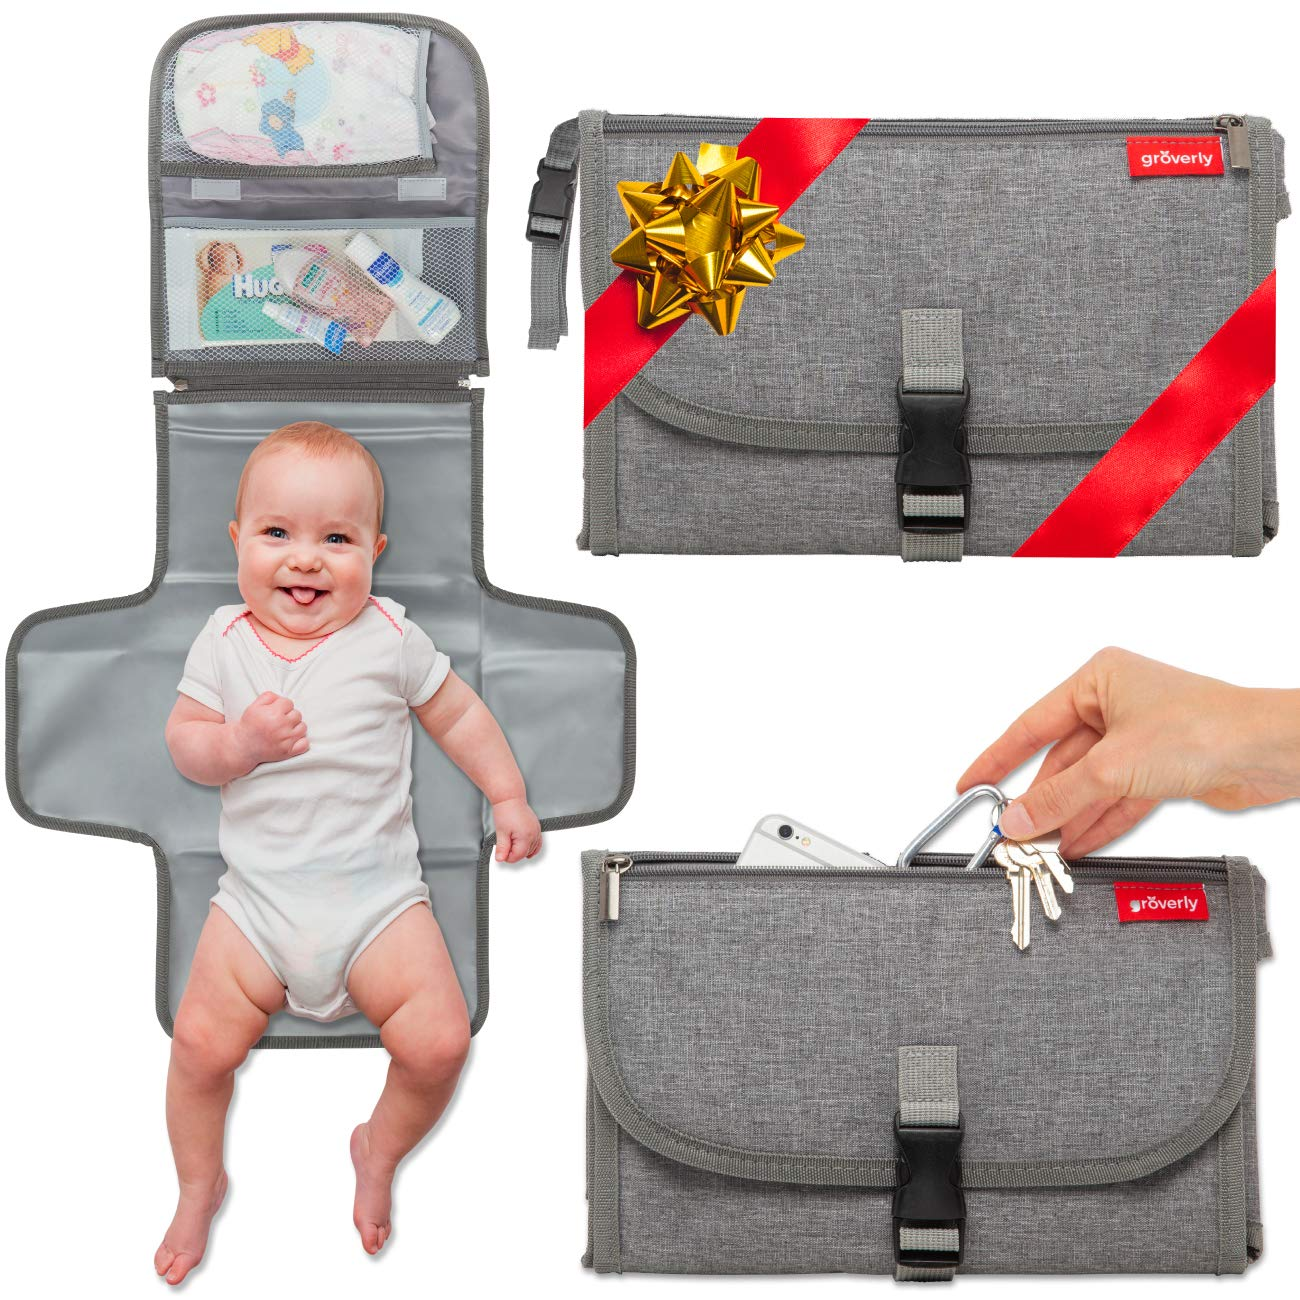 Groverly Portable Diaper Changing Pad